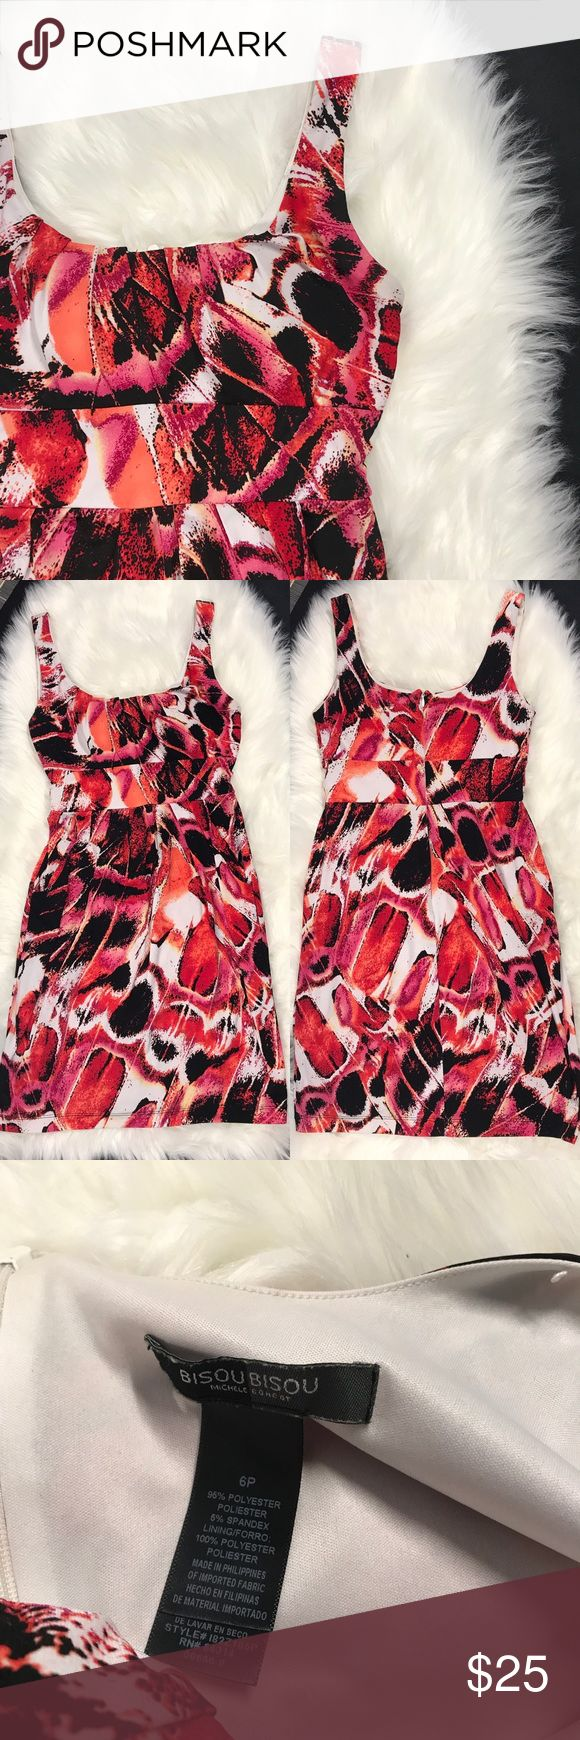 """Bisou bisou Petite dress 6P pink black red white Bisou bisou  Women's size 6 Petite  Sleeveless dress Front pockets  Zips in back  Padding in front  Polyester Blend  Good condition- hanger straps removed  Measurements laying flat:  Armpit to armpit: 15"""" Waist: 13"""" (up to 26"""" waist(  Length from shoulder to hem: 33.5"""" Bisou Bisou Dresses"""